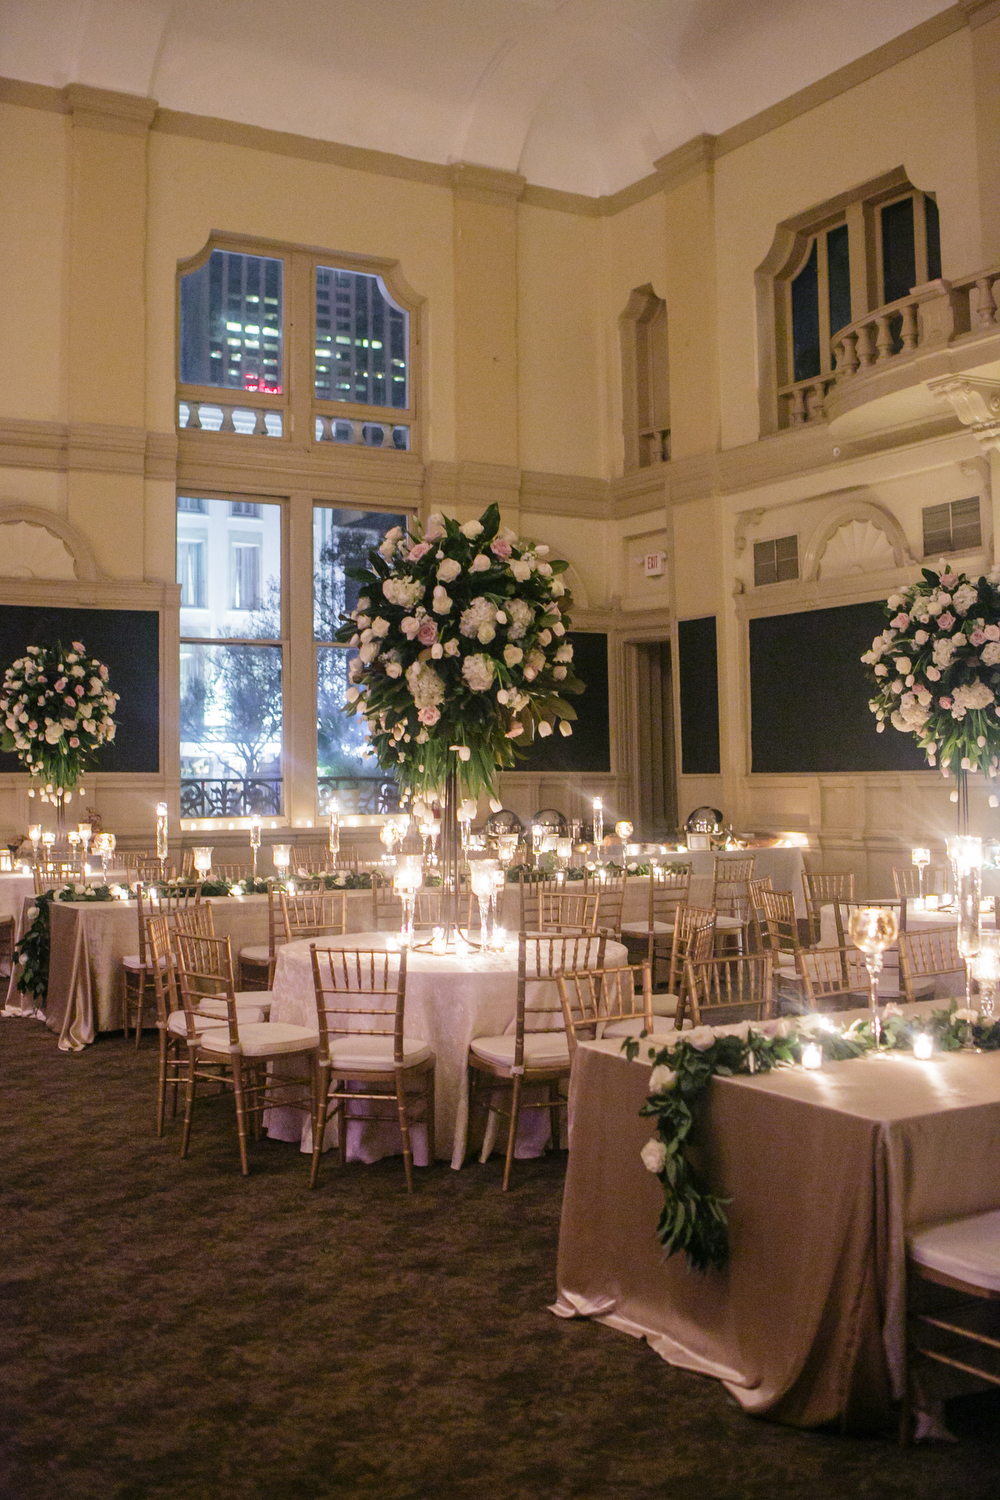 How to transform an open ballroom with stunning decor | Sapphire Events | Greer G Photography | Board of Trade | White and Gold Wedding | Winter Wedding Inspiration | White and Green Wedding | Ballroom wedding | Tall floral centerpieces with magnolia leaves and tulips